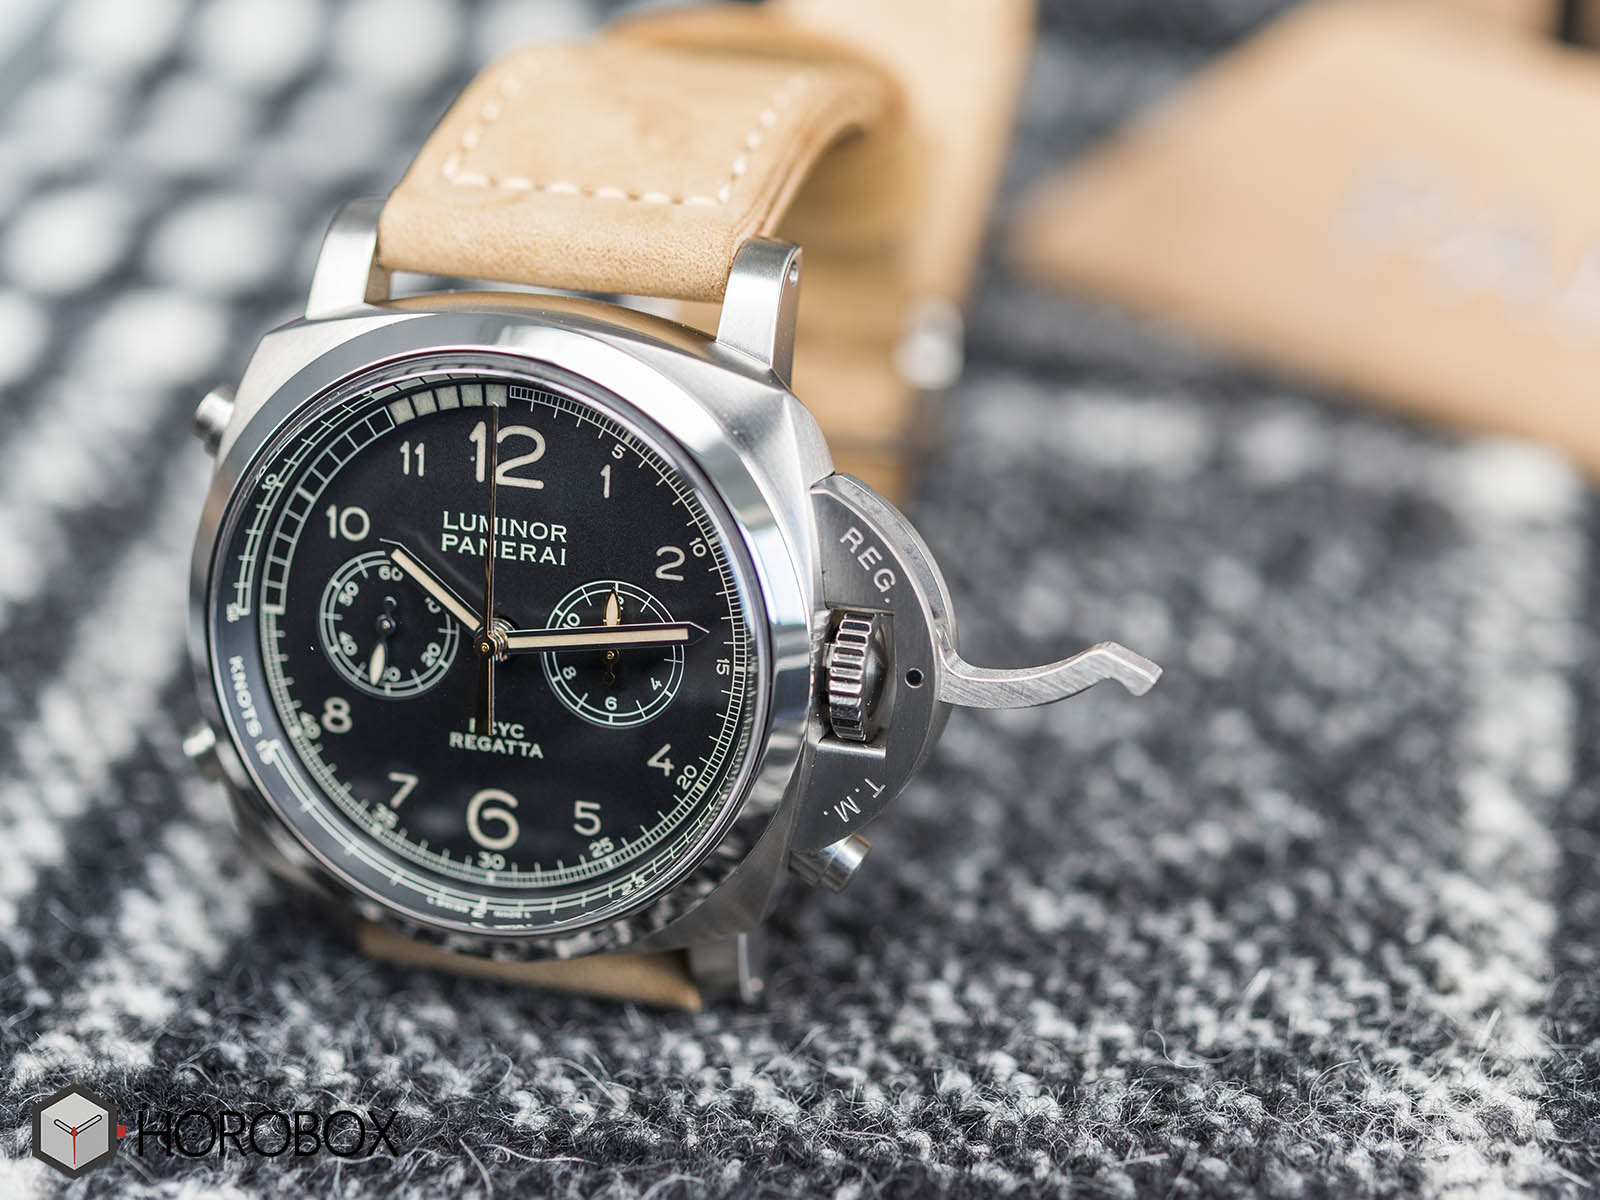 panerai-luminor-1950-pcyc-regatta-pam00652-5.jpg